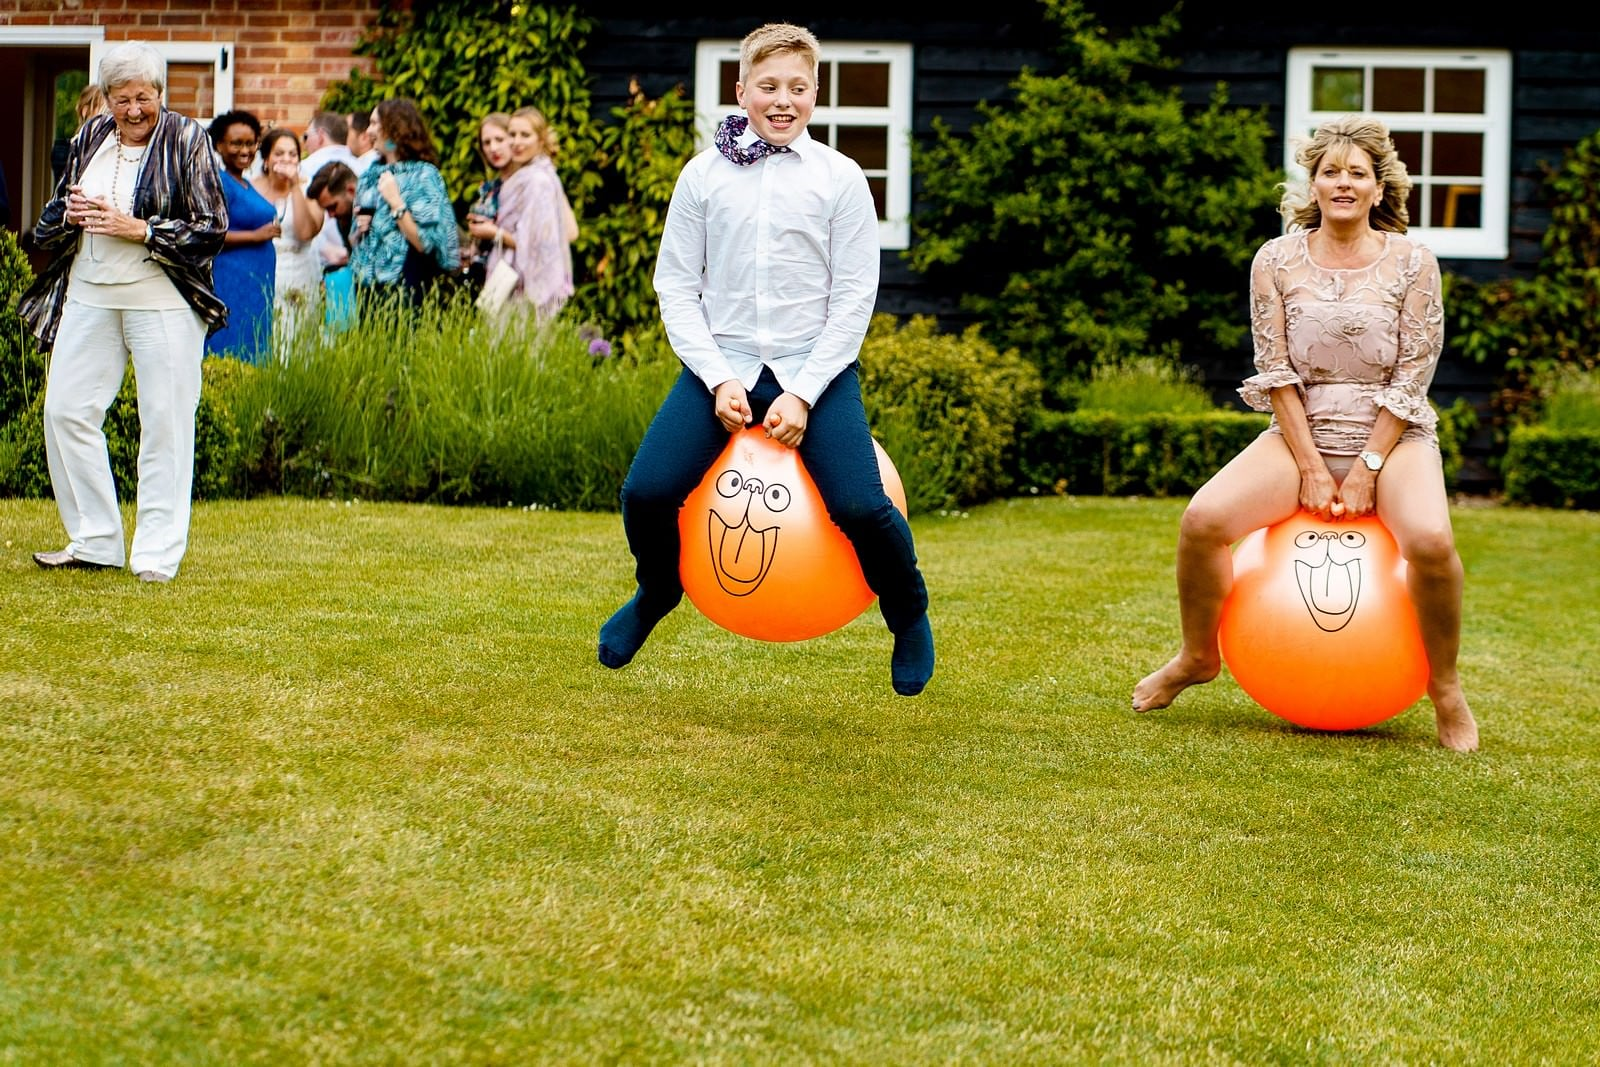 space hoppers at wedding at ufton court 1